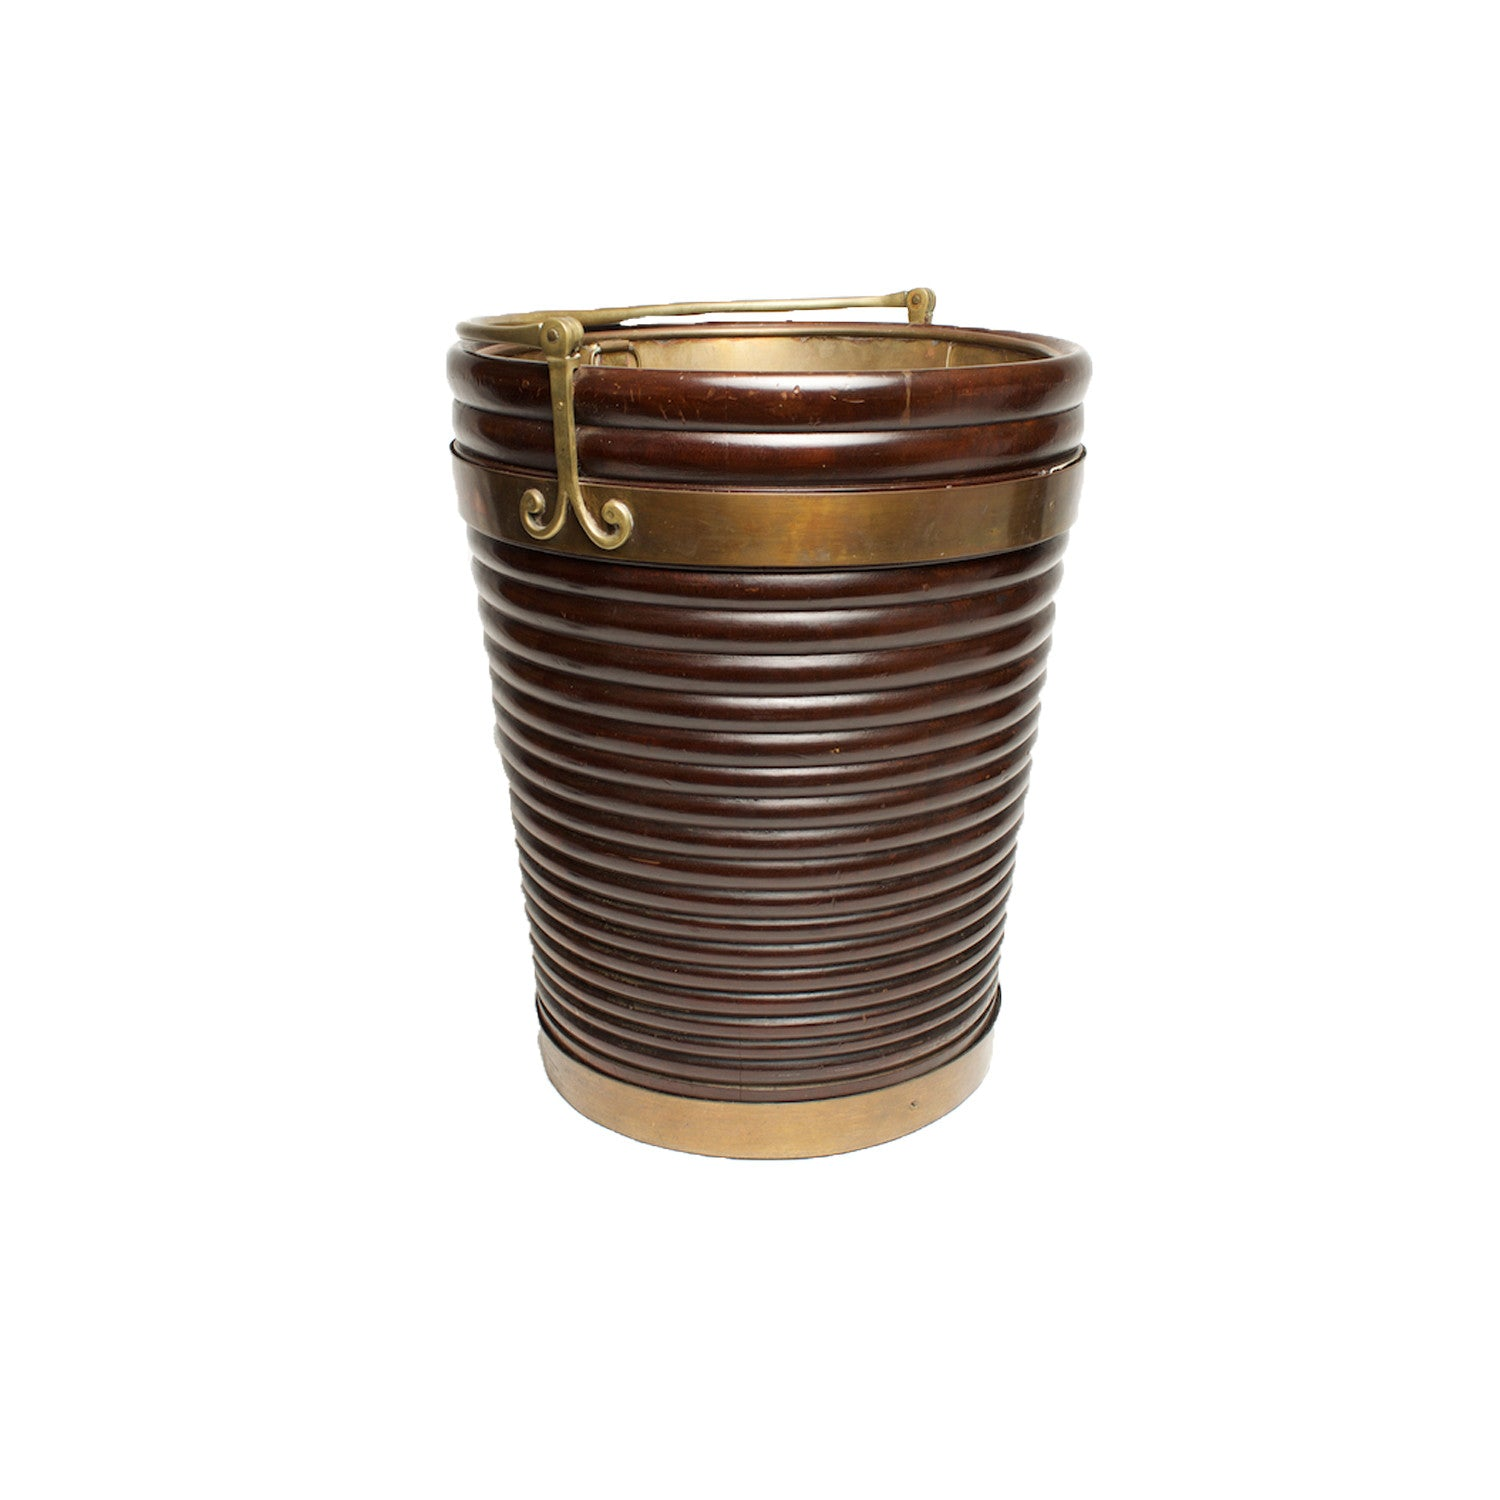 brass bound peat Bucket